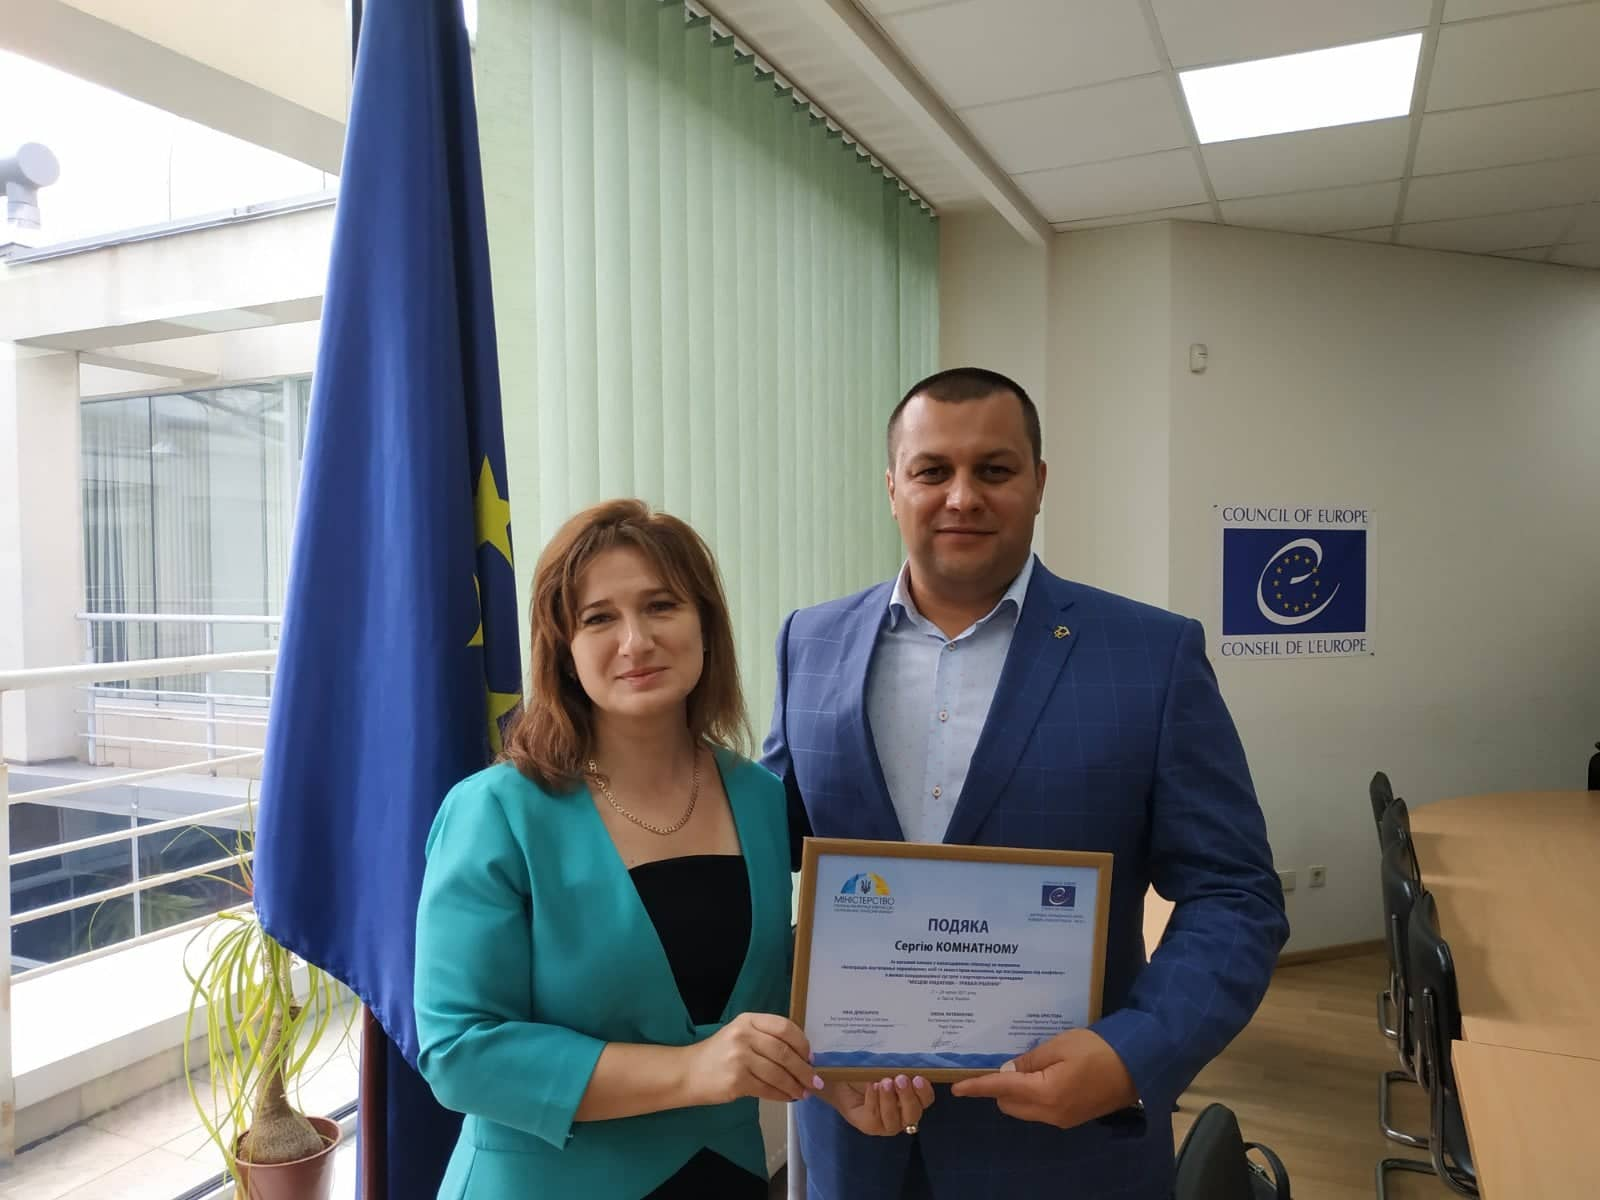 HELPING IDPs TOGETHER WITH THE PROJECT OF THE COUNCIL OF EUROPE